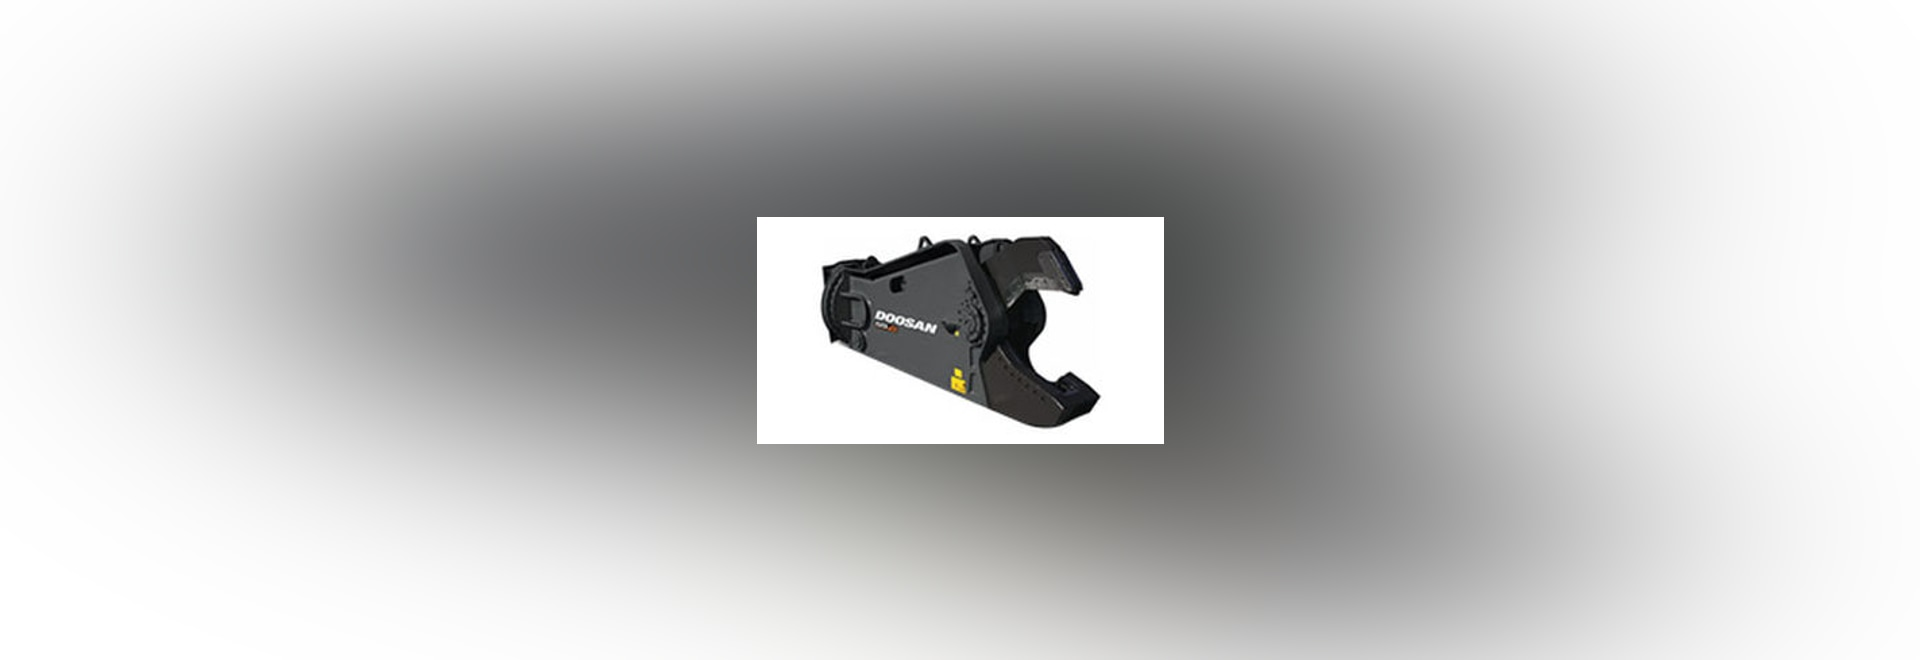 NEW: hydraulic demolition shears by DAEWOO Construction Equipment Division